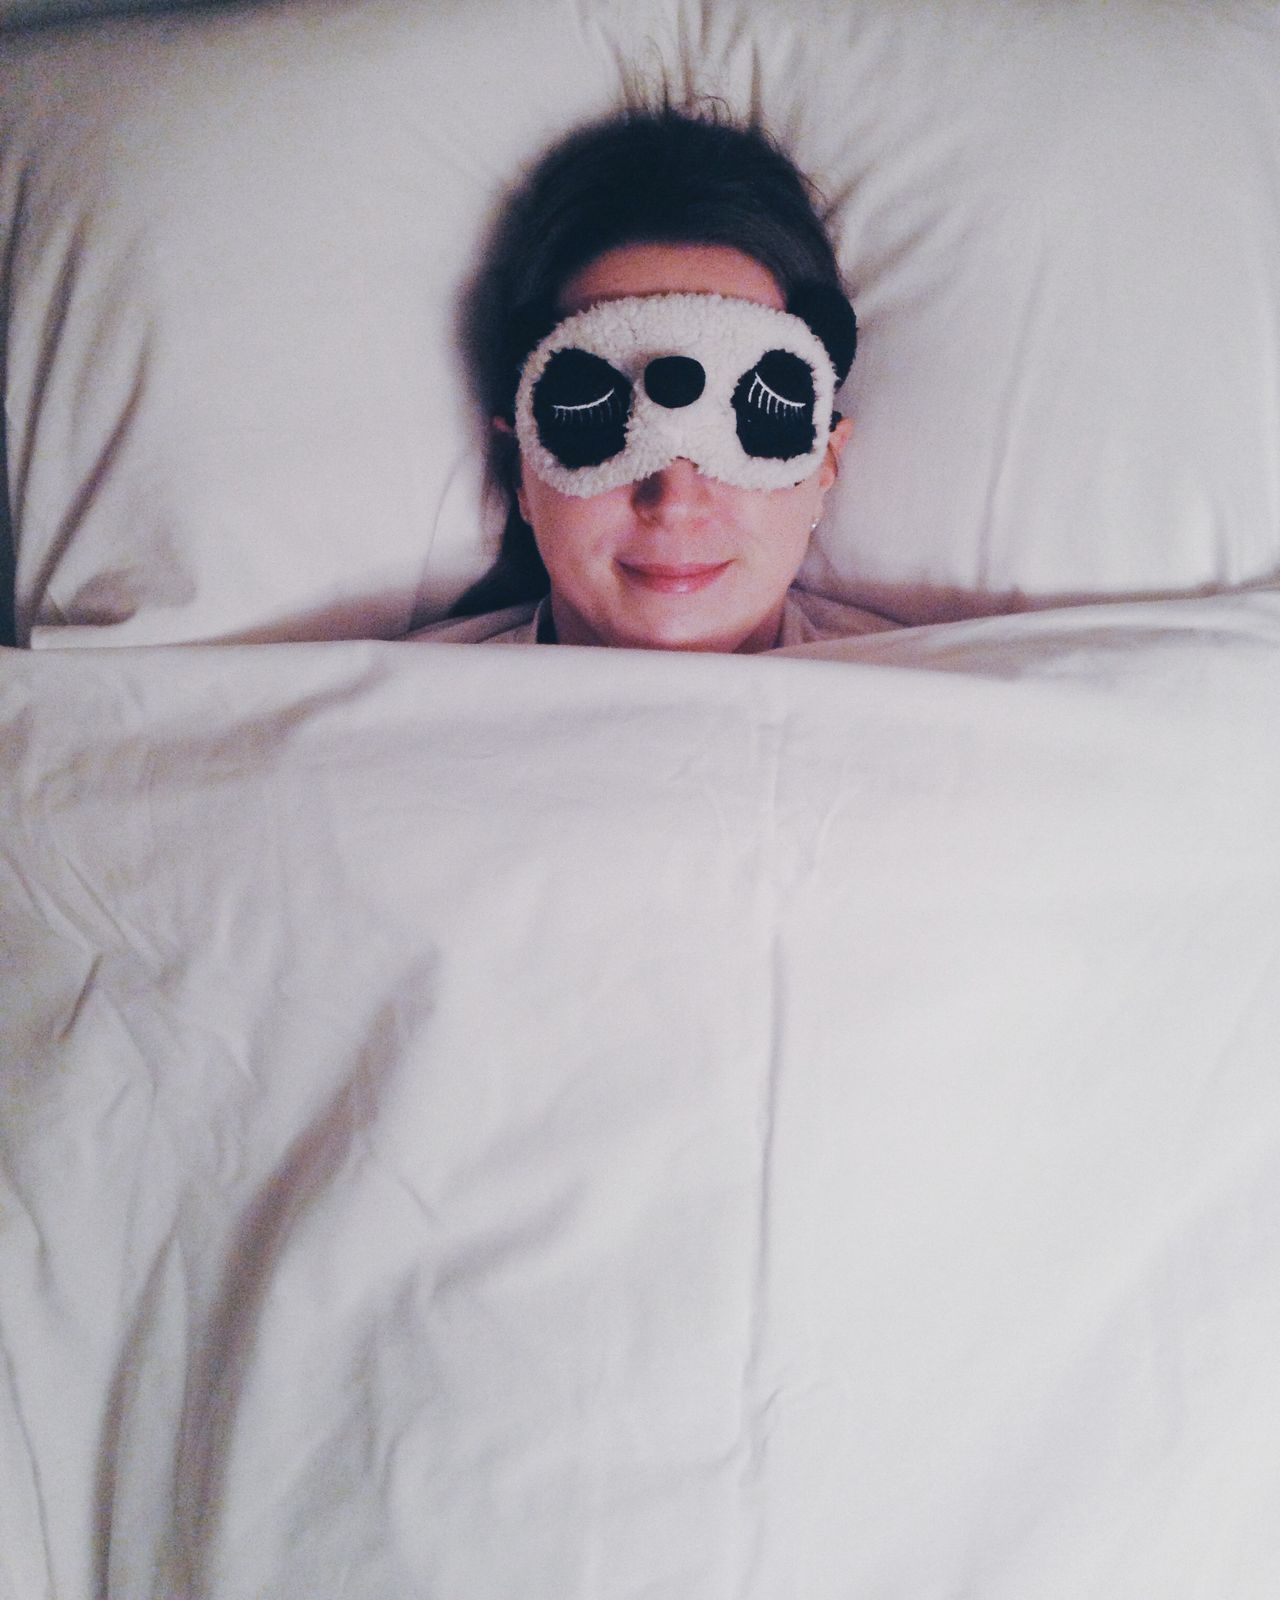 Bedtime Panda Mask Sleeping Beauty Everyday Joy